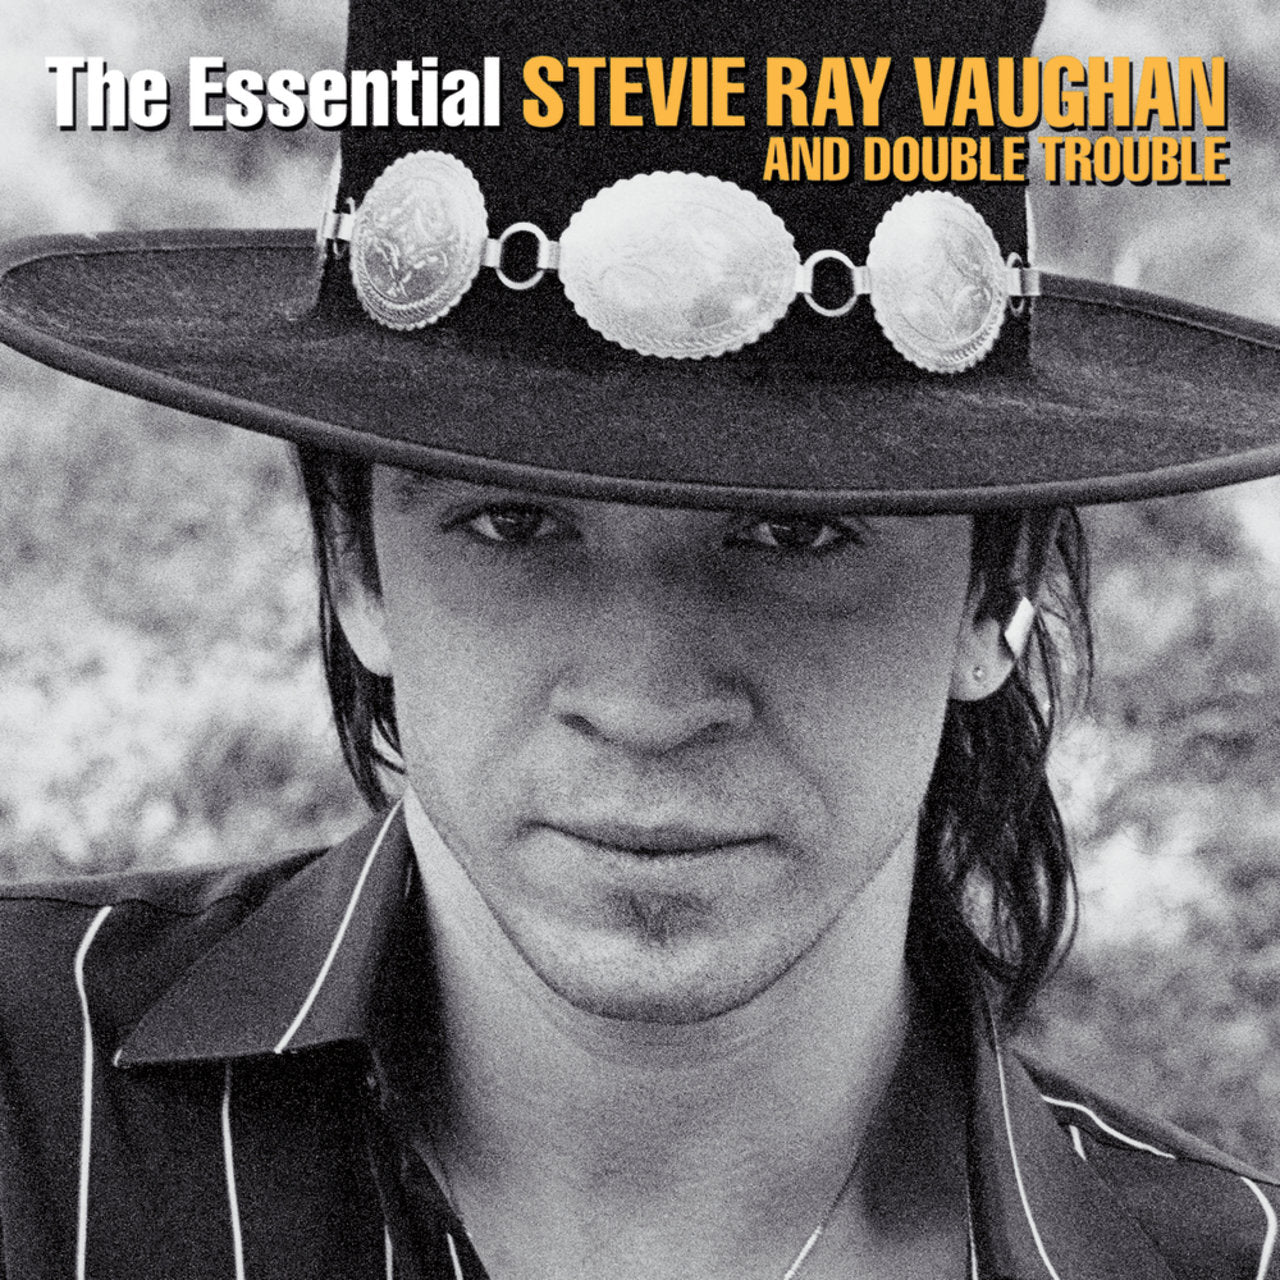 Stevie Ray Vaughan And Double Trouble* ‎– The Essential Stevie Ray Vaughan And Double Trouble